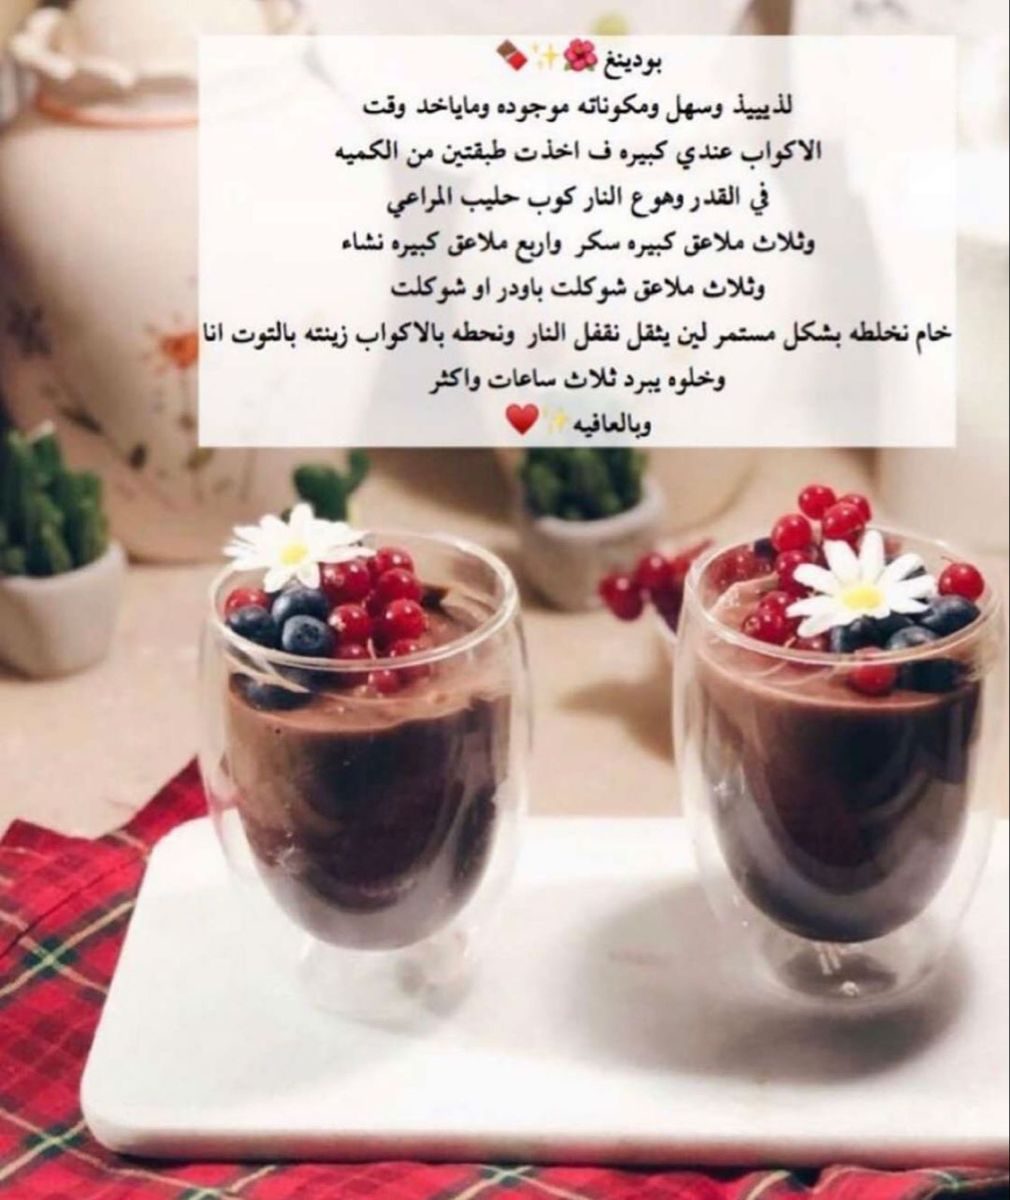 Pin By Soso On وصفات عصير وقهوة Food Food And Drink Recipes